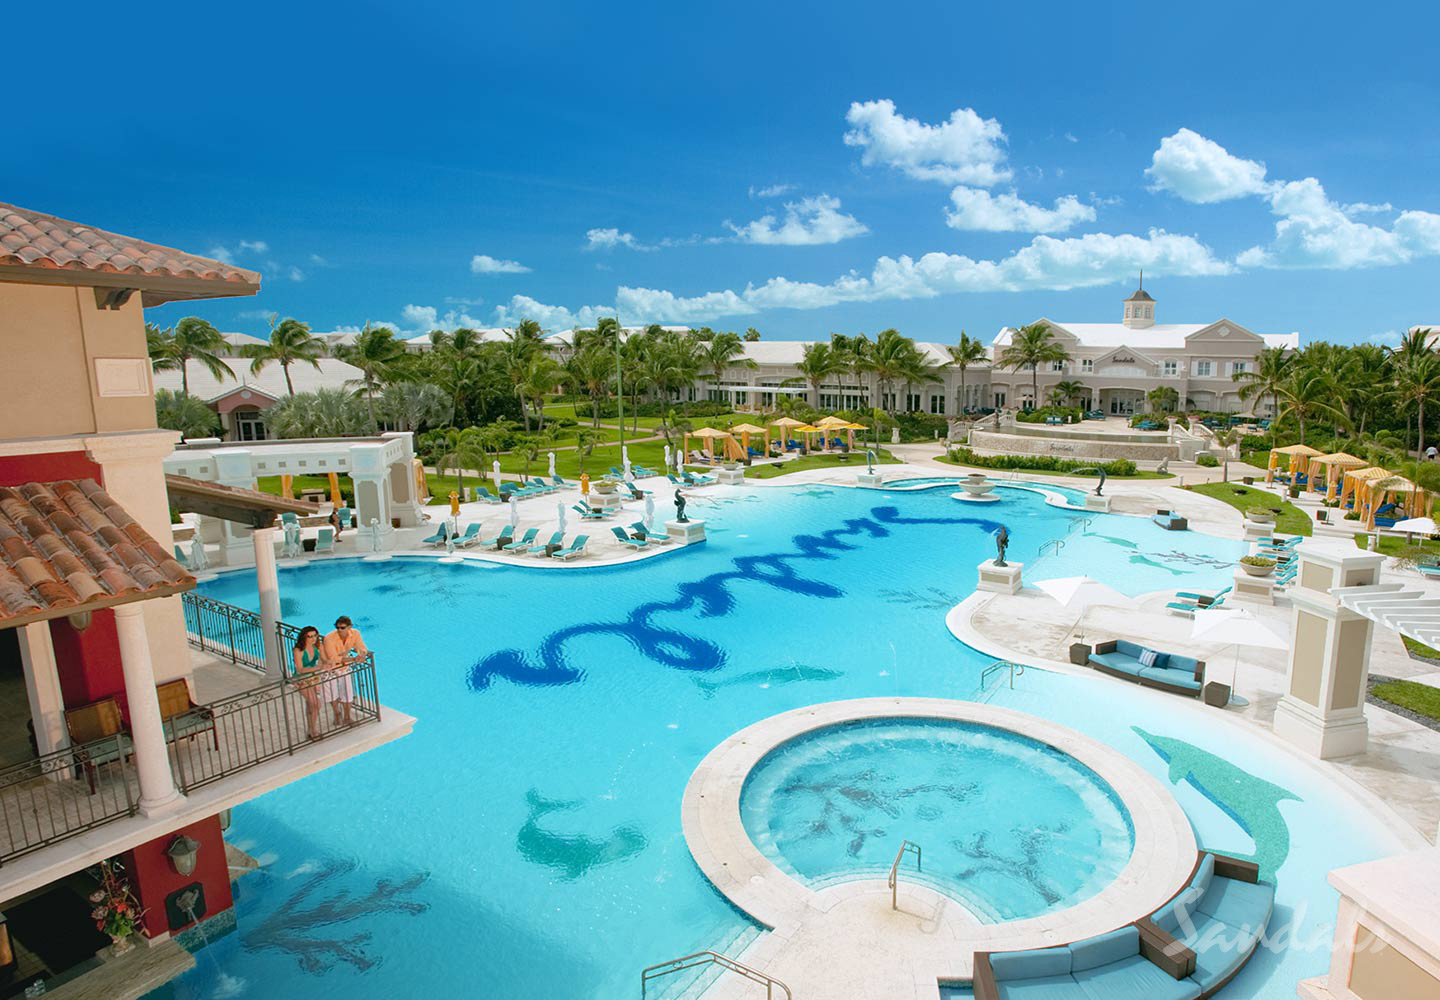 Travel Agency All-Inclusive Resort Sandals Emerald Bay 009